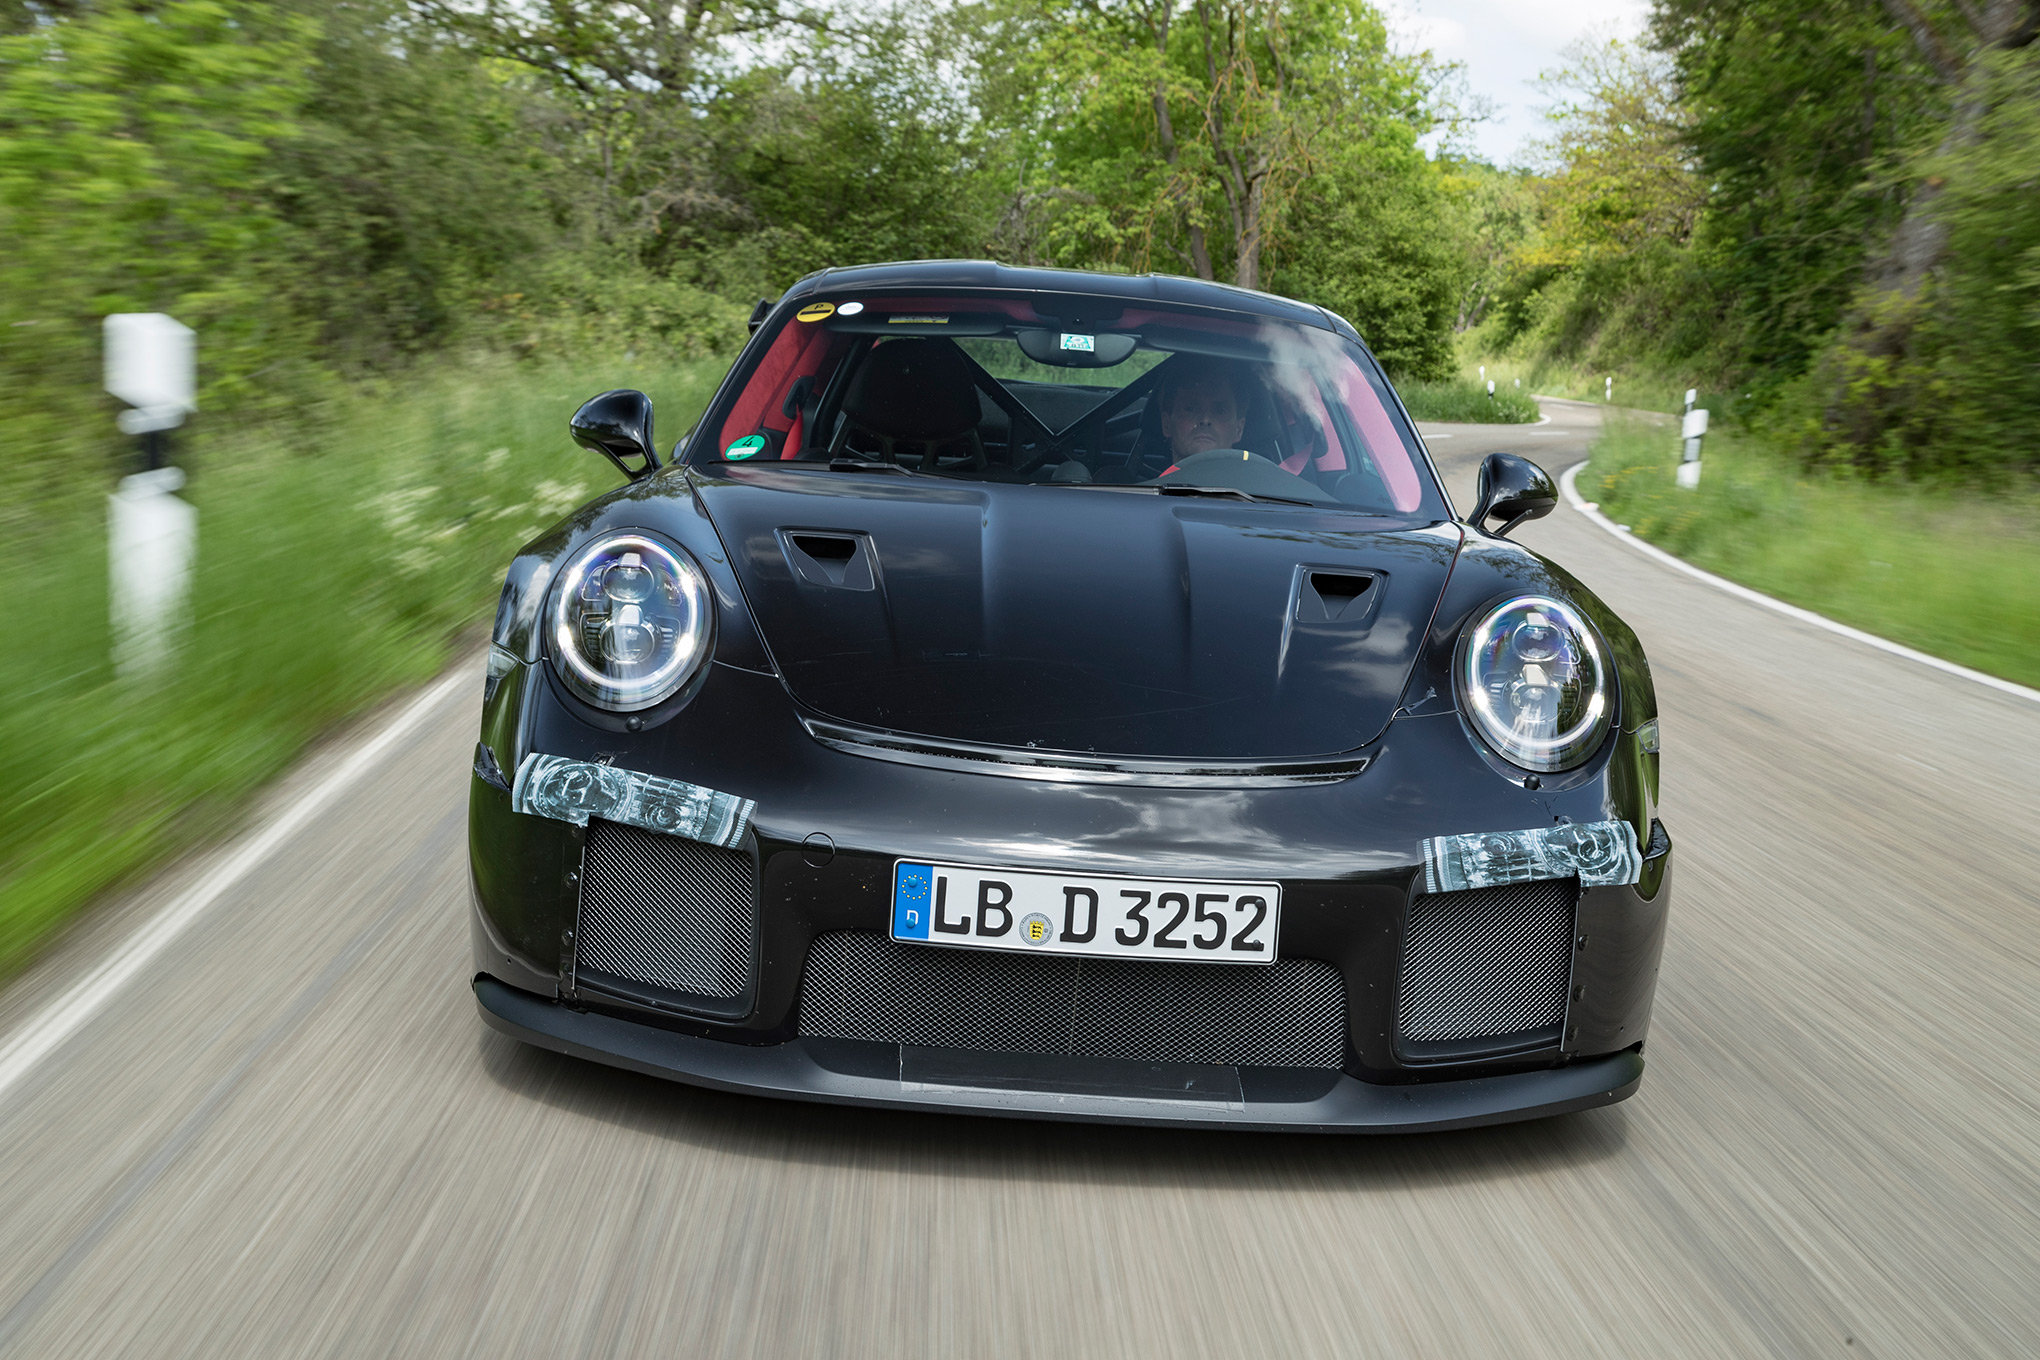 Porsche-911-GT2-RS.jpg14 Breathtaking How Many Porsche 911 Gt2 Were Made Cars Trend